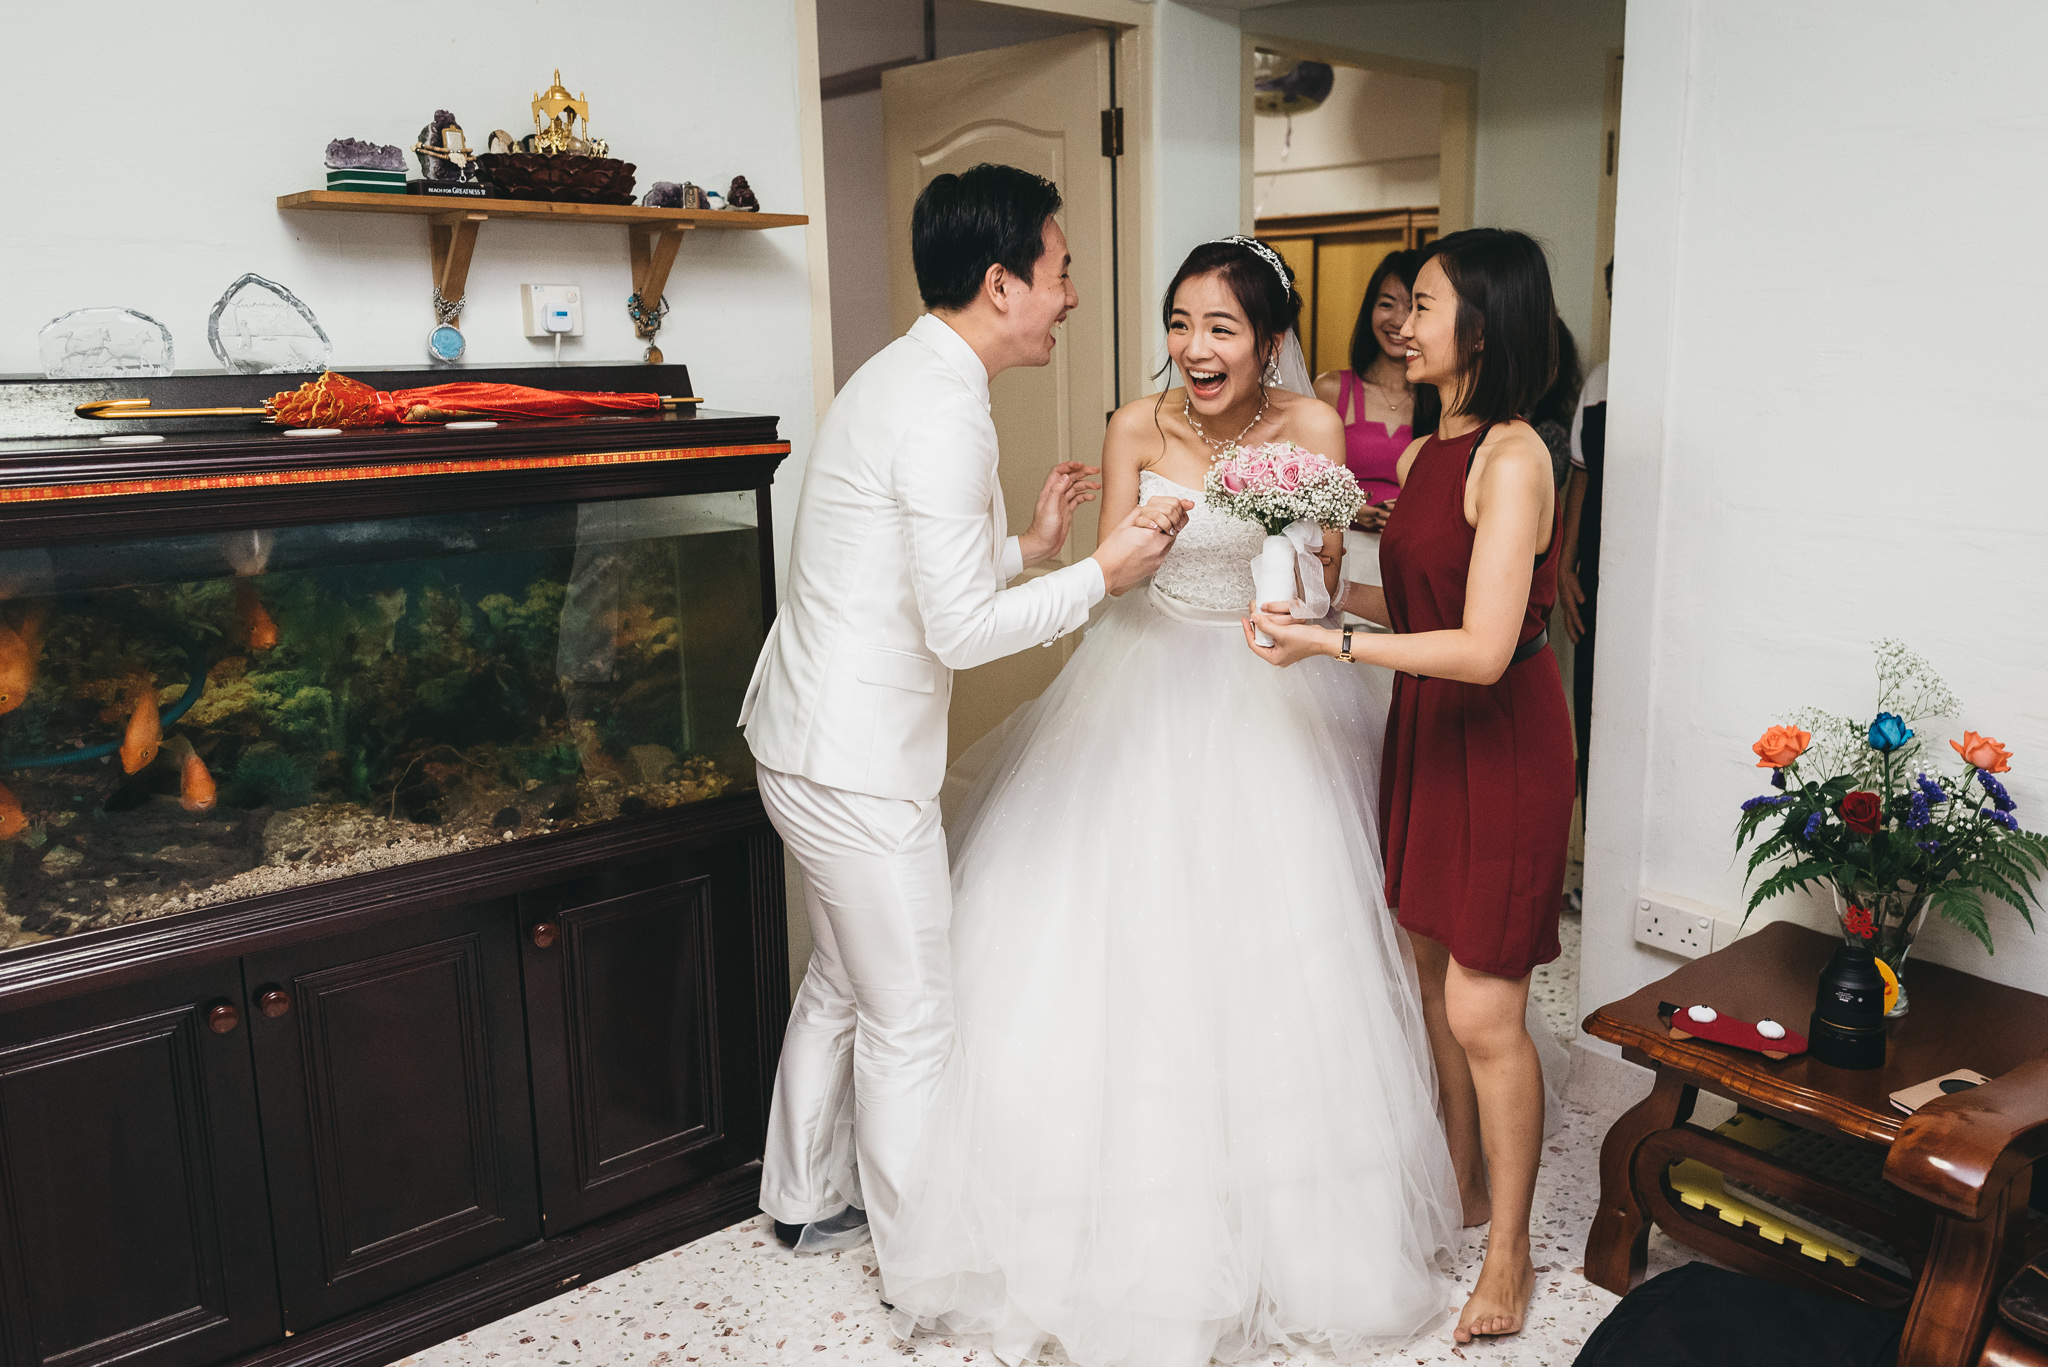 Fiona & Terence Wedding Day Highlights (resized for sharing) - 116.jpg